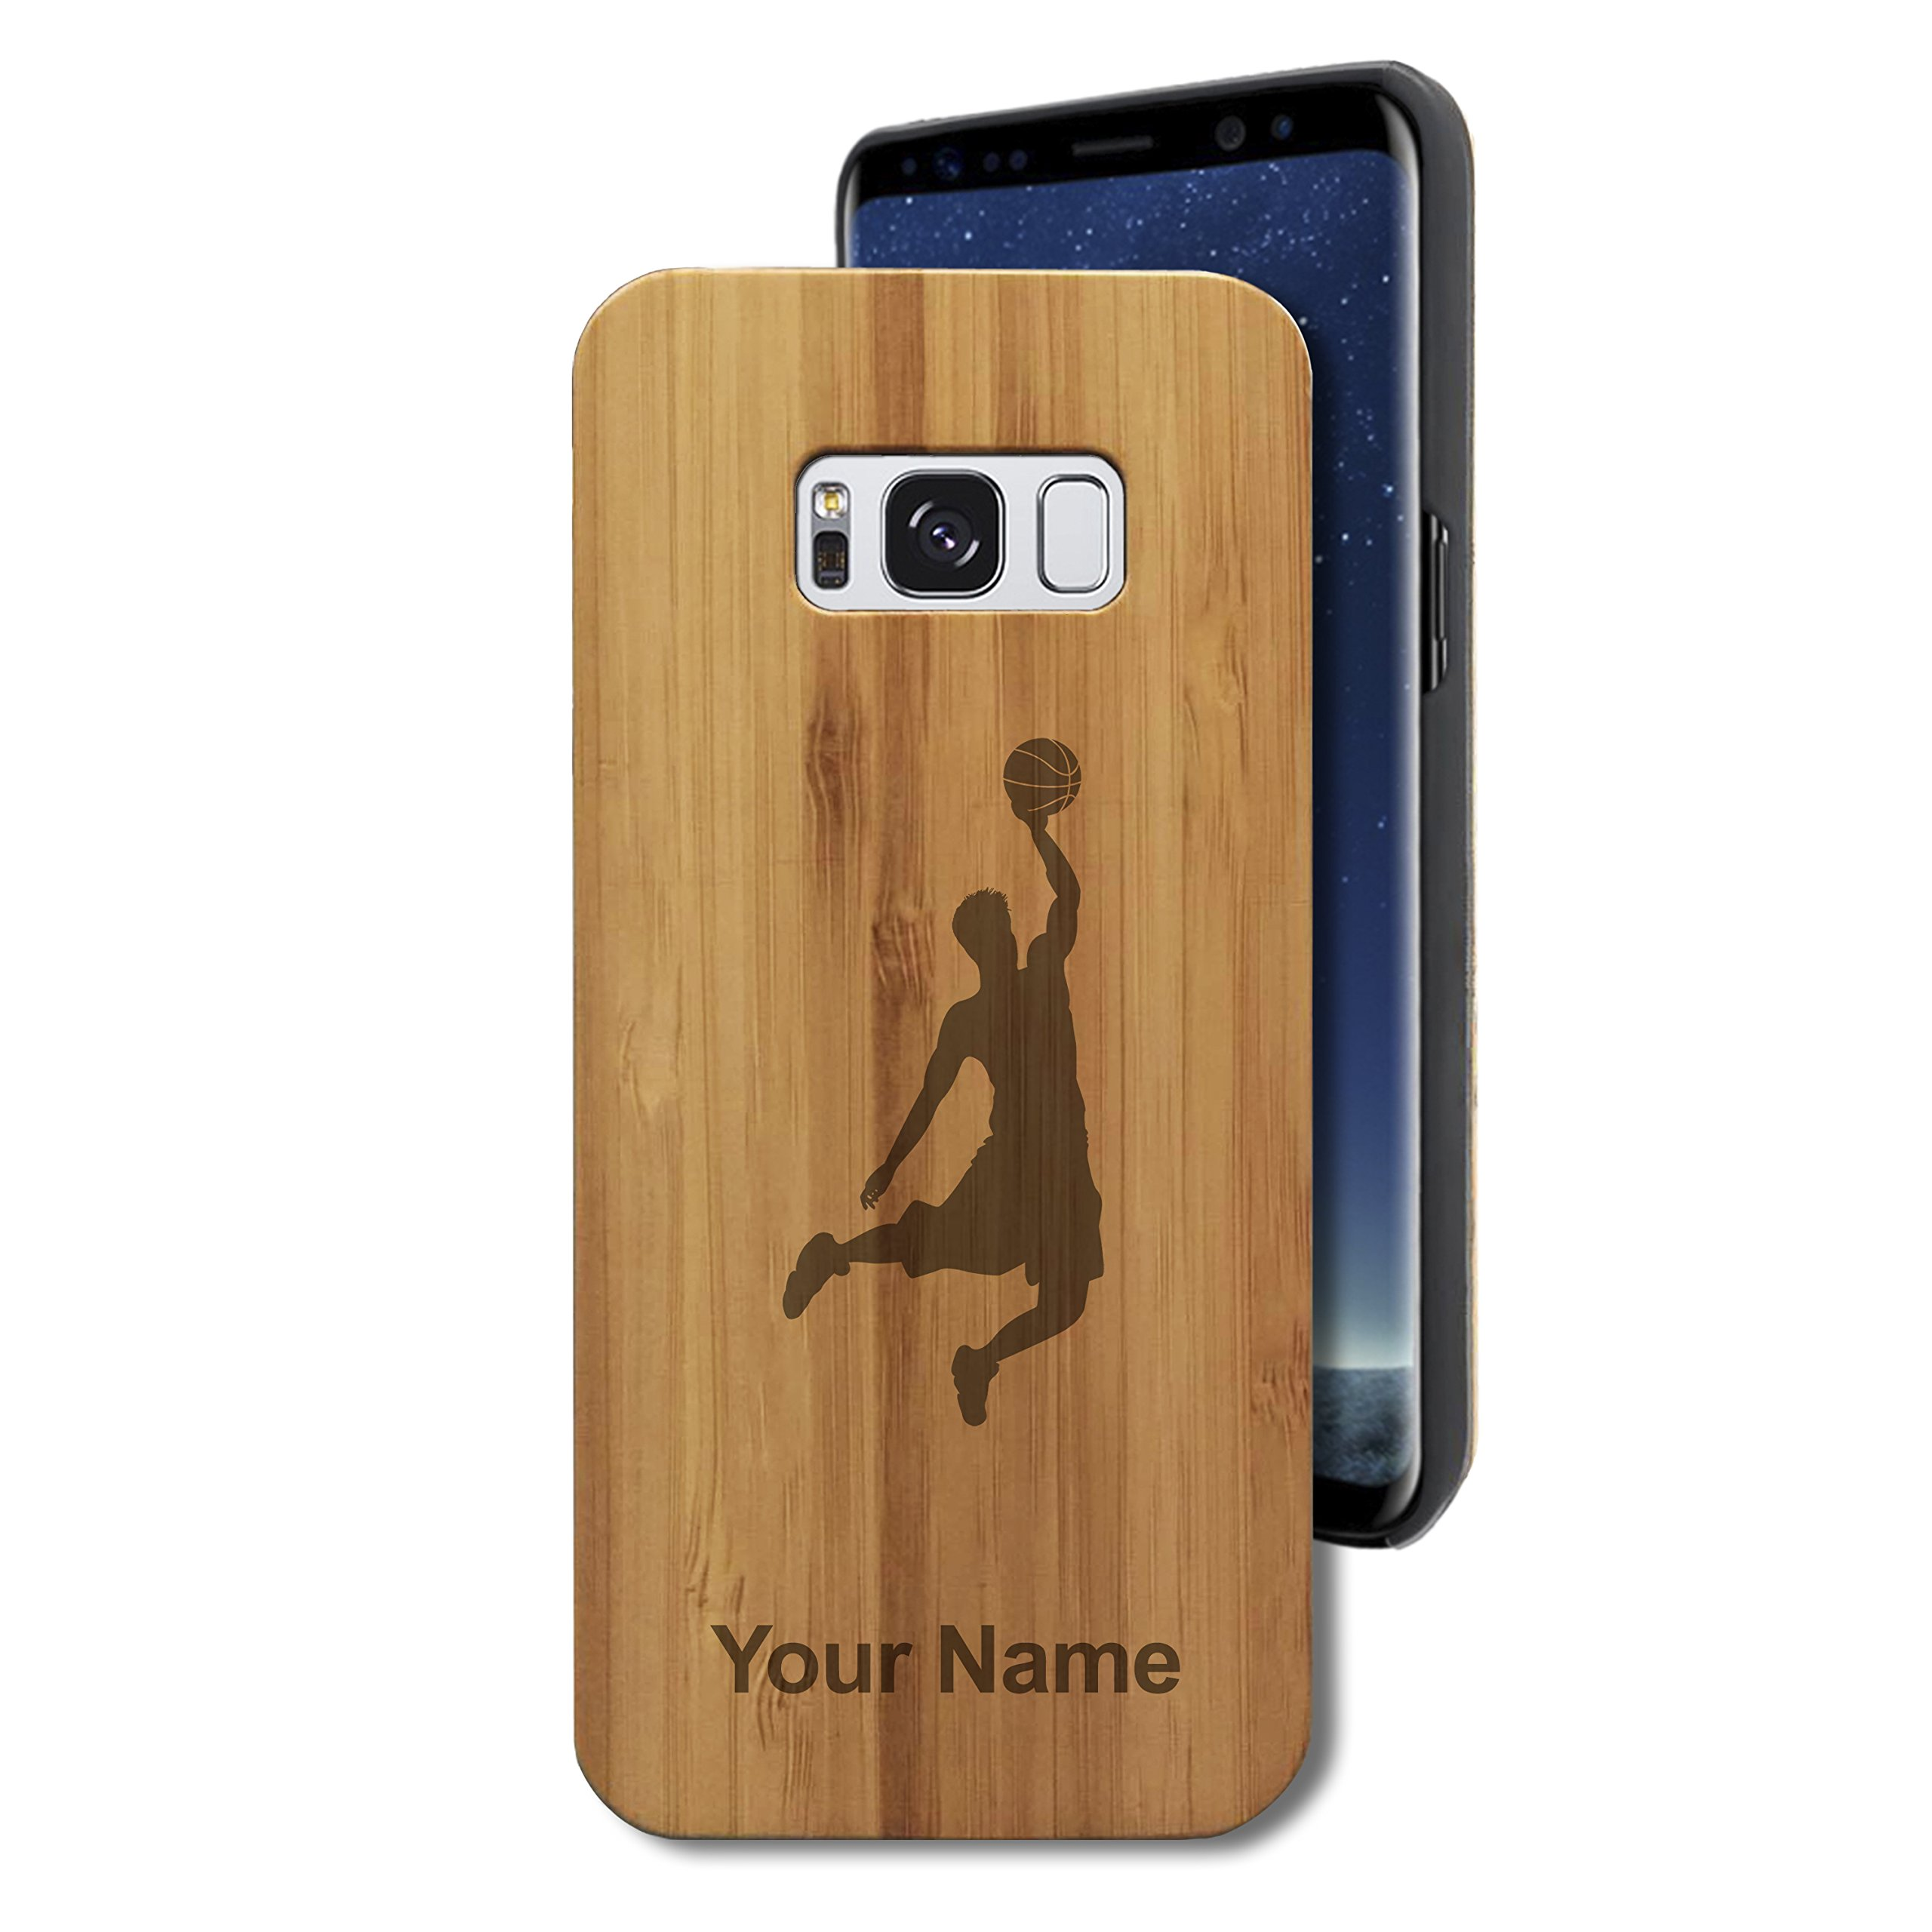 Bamboo Case for Galaxy S8 - Basketball Slam Dunk Man - Personalized Engraving Included